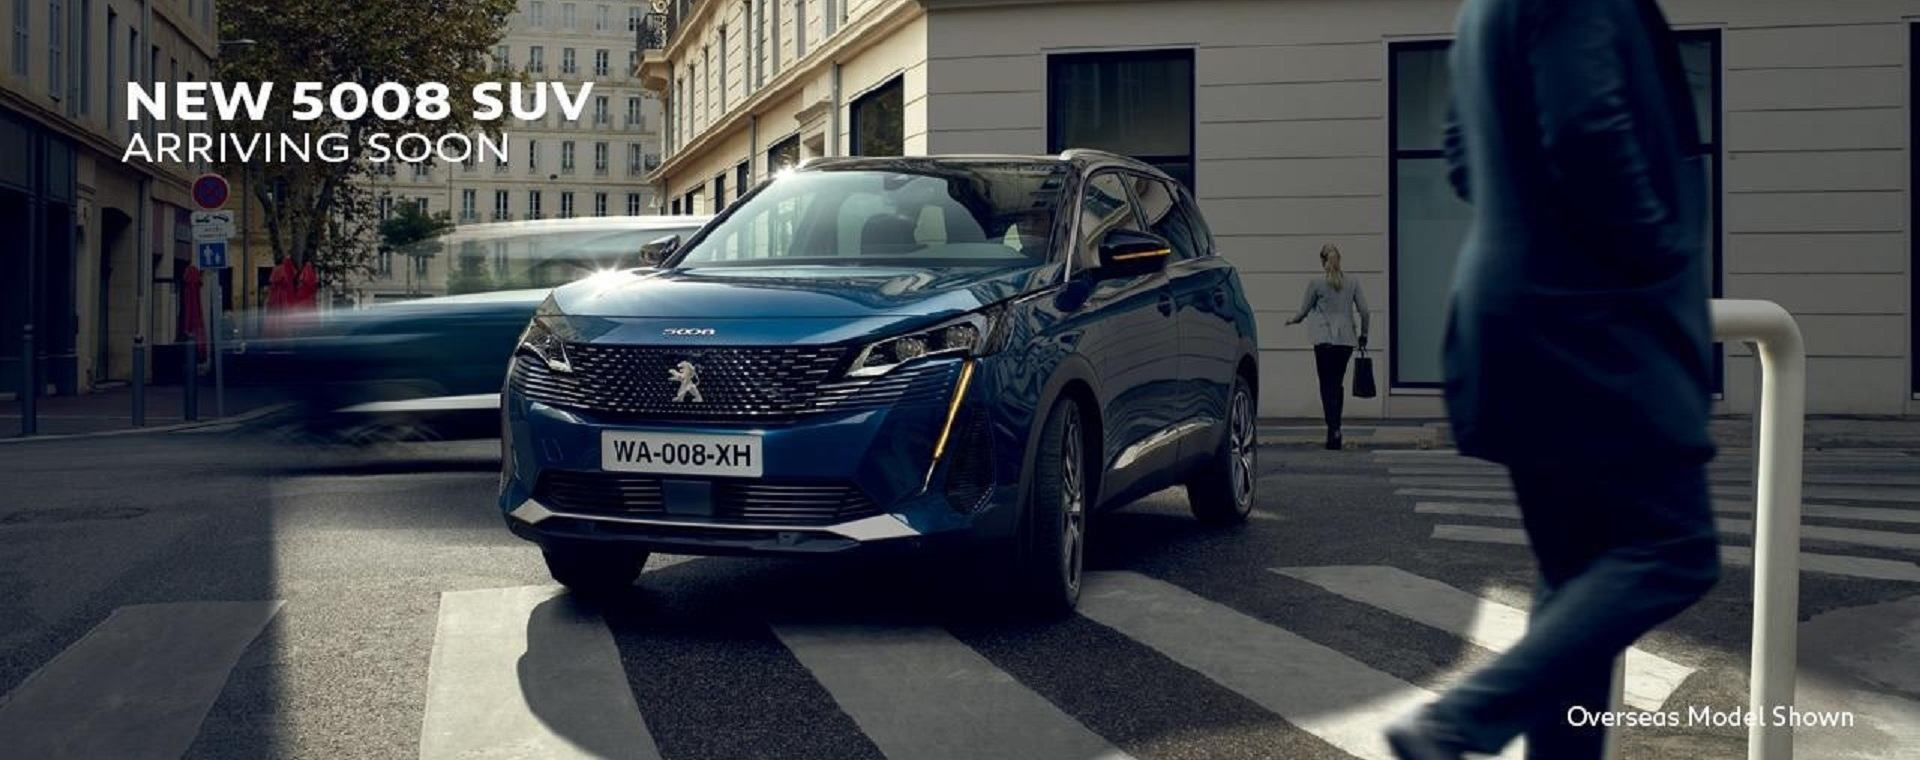 PEUGEOT New 5008 Coming Soon